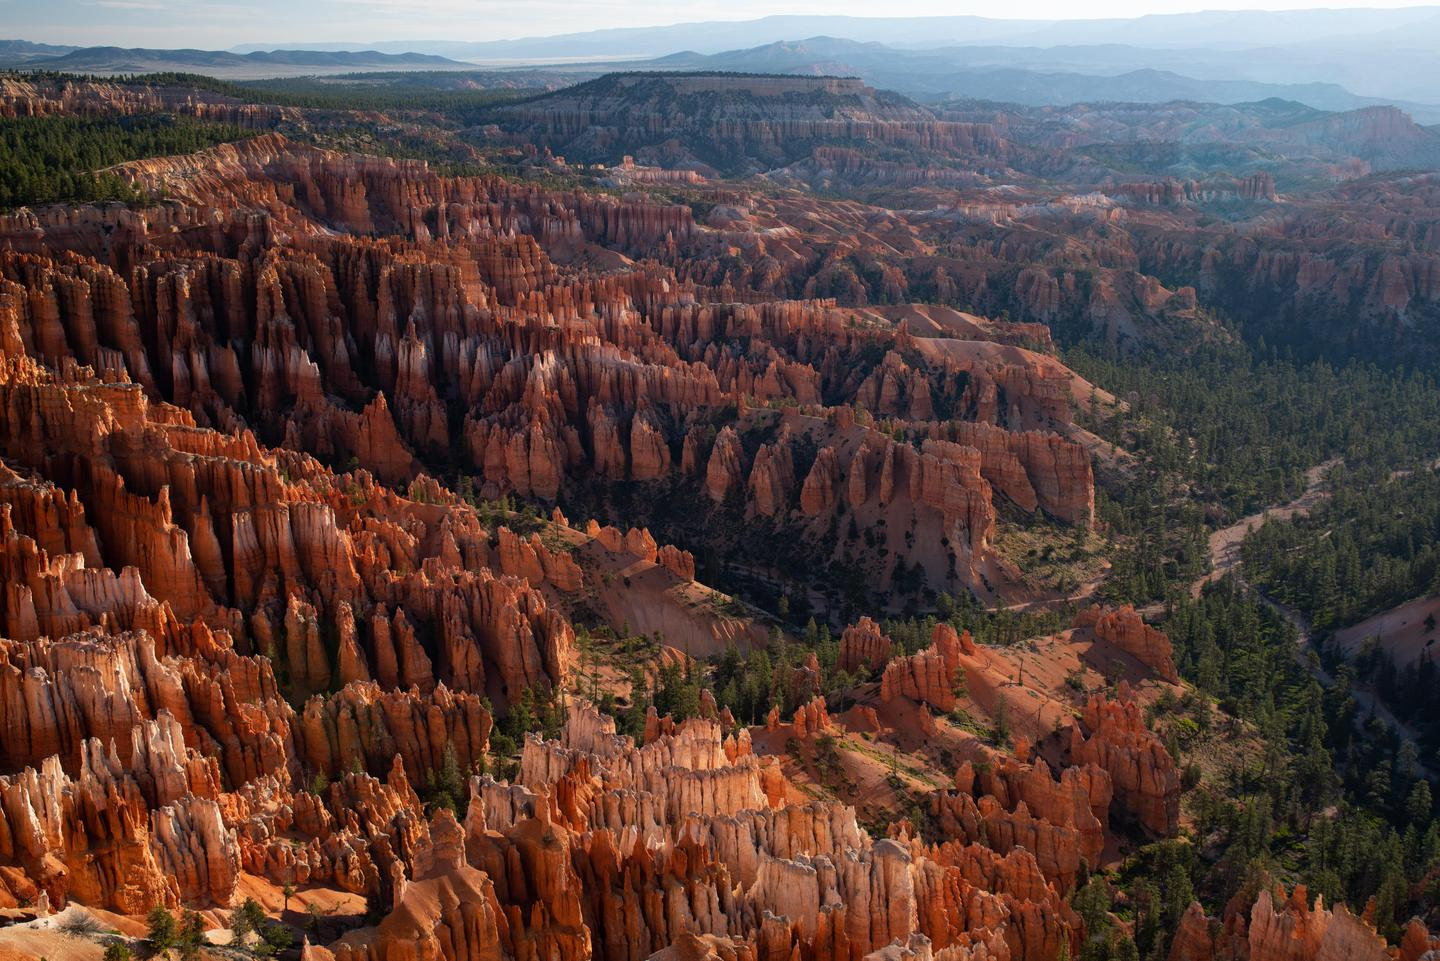 Preview photo of Bryce Canyon National Park